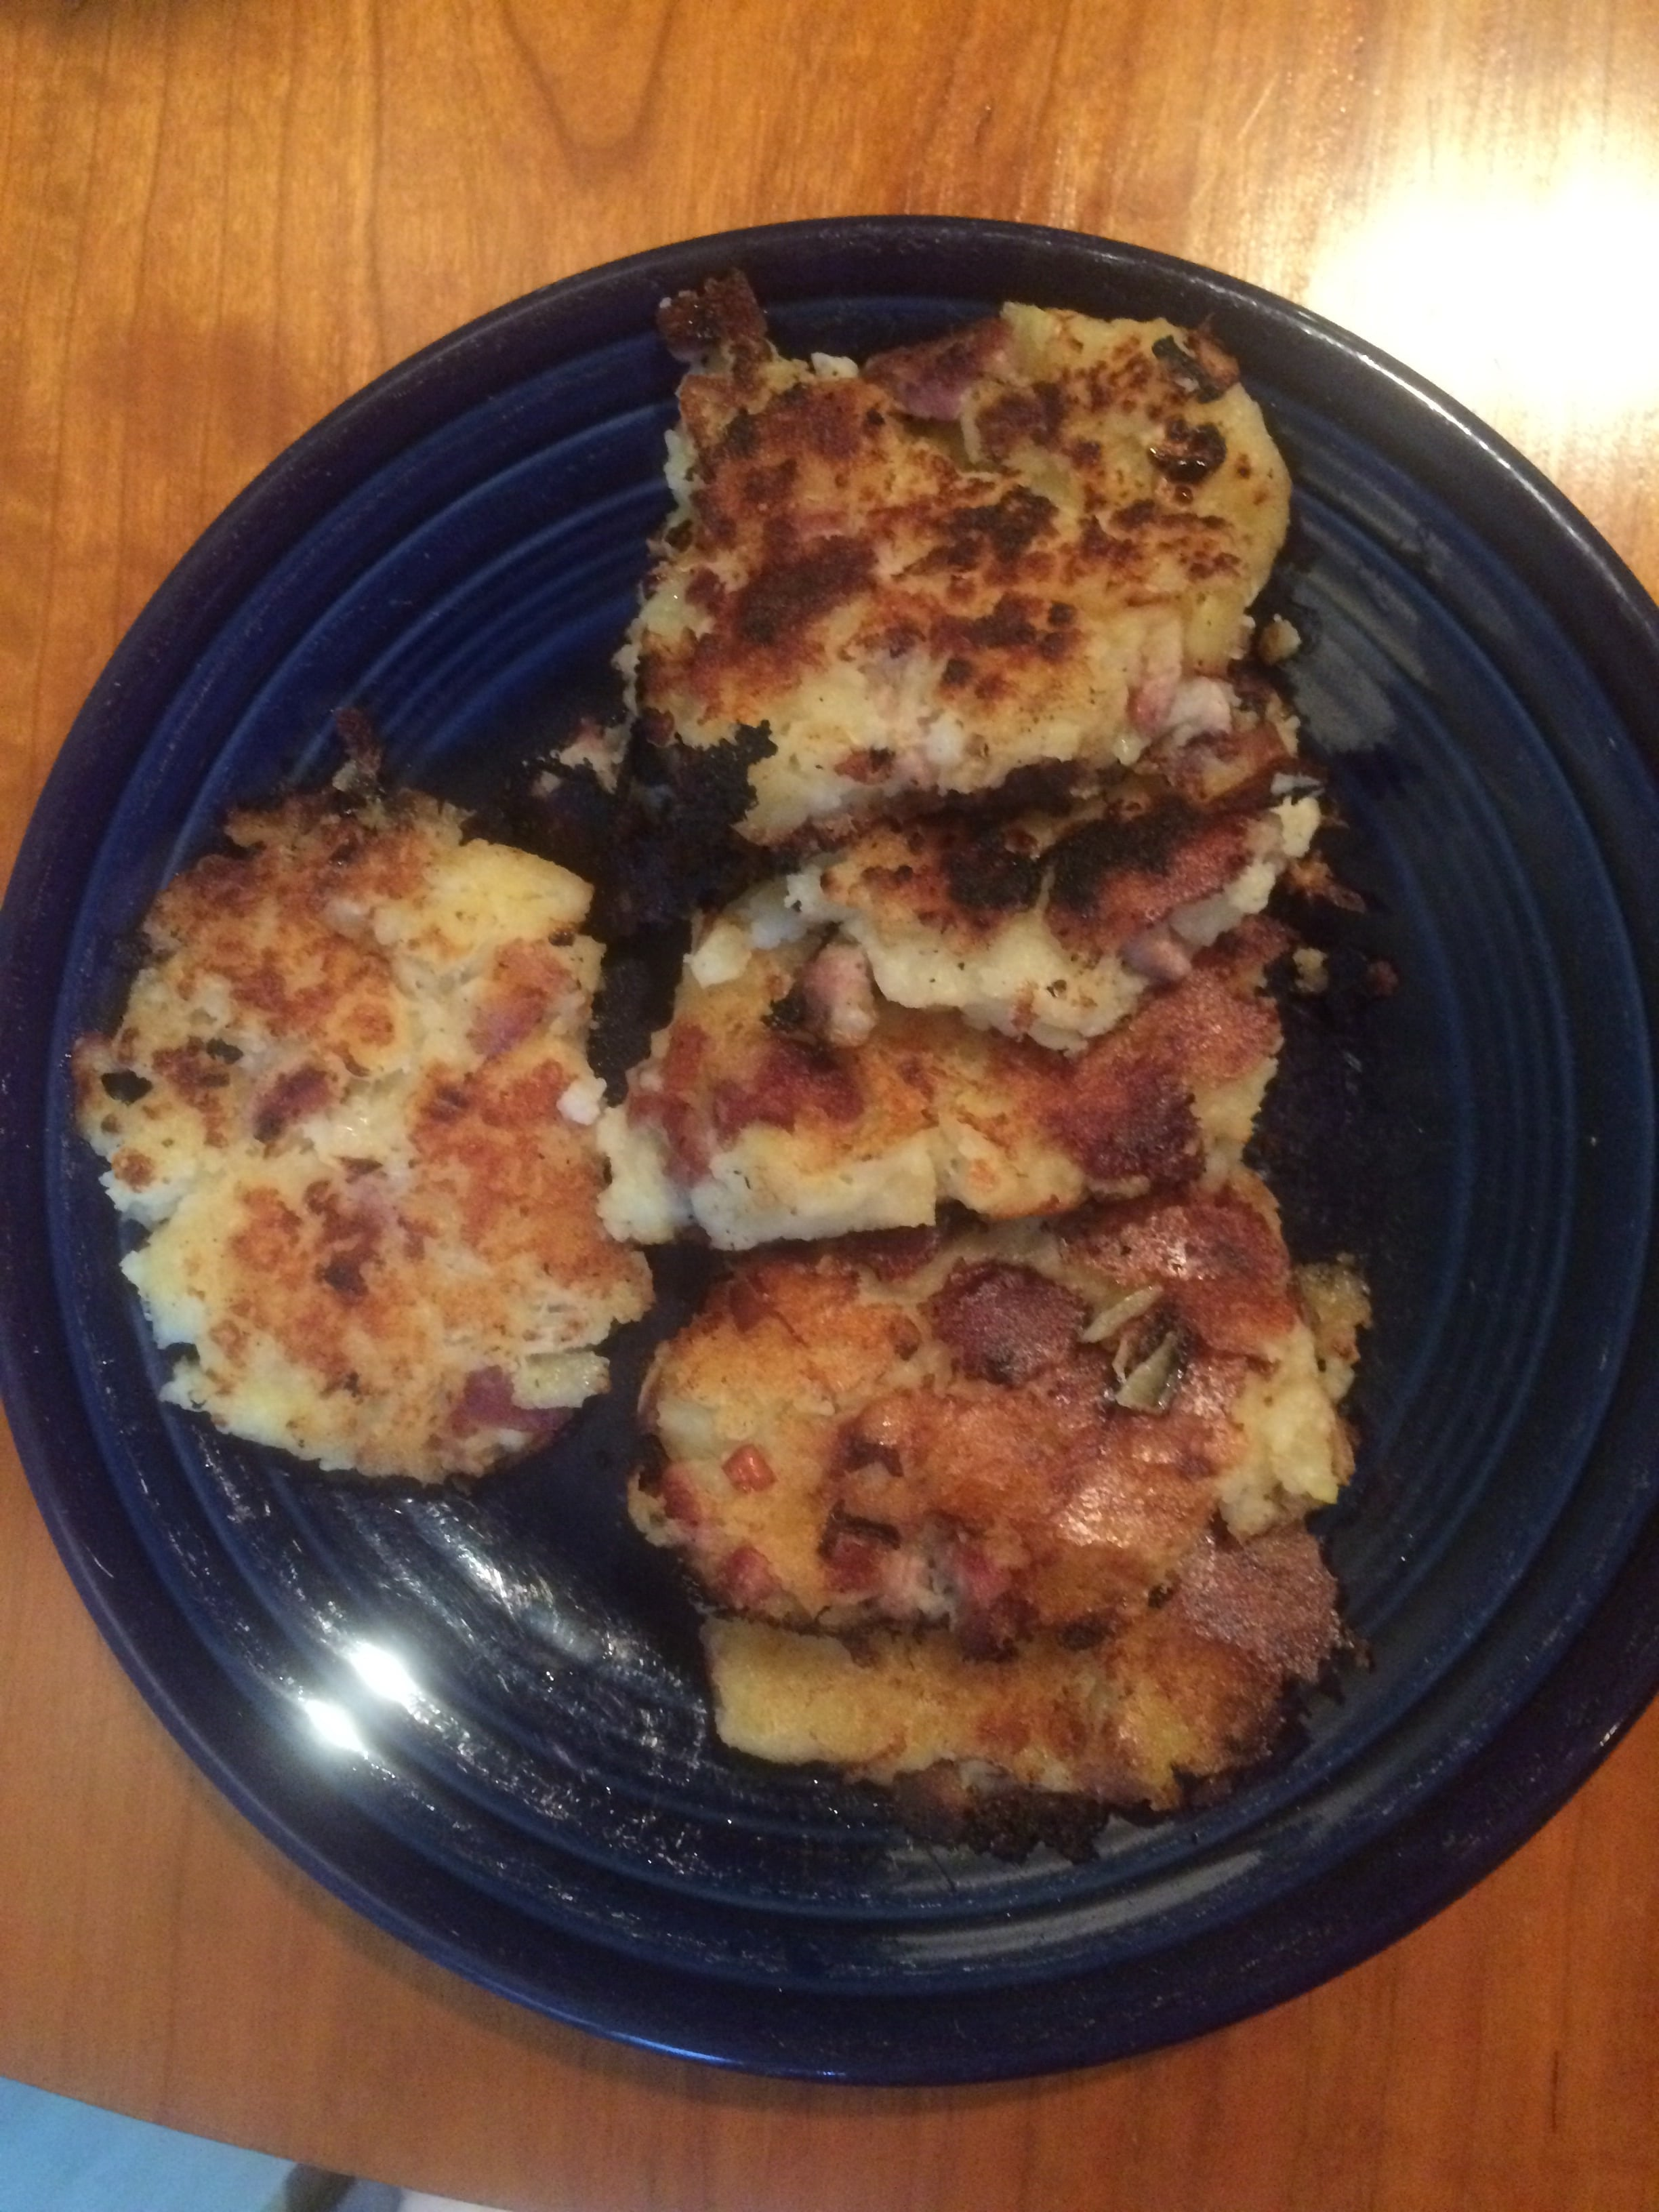 A slightly messy mashed potato cake with ham bits and chopped onion.